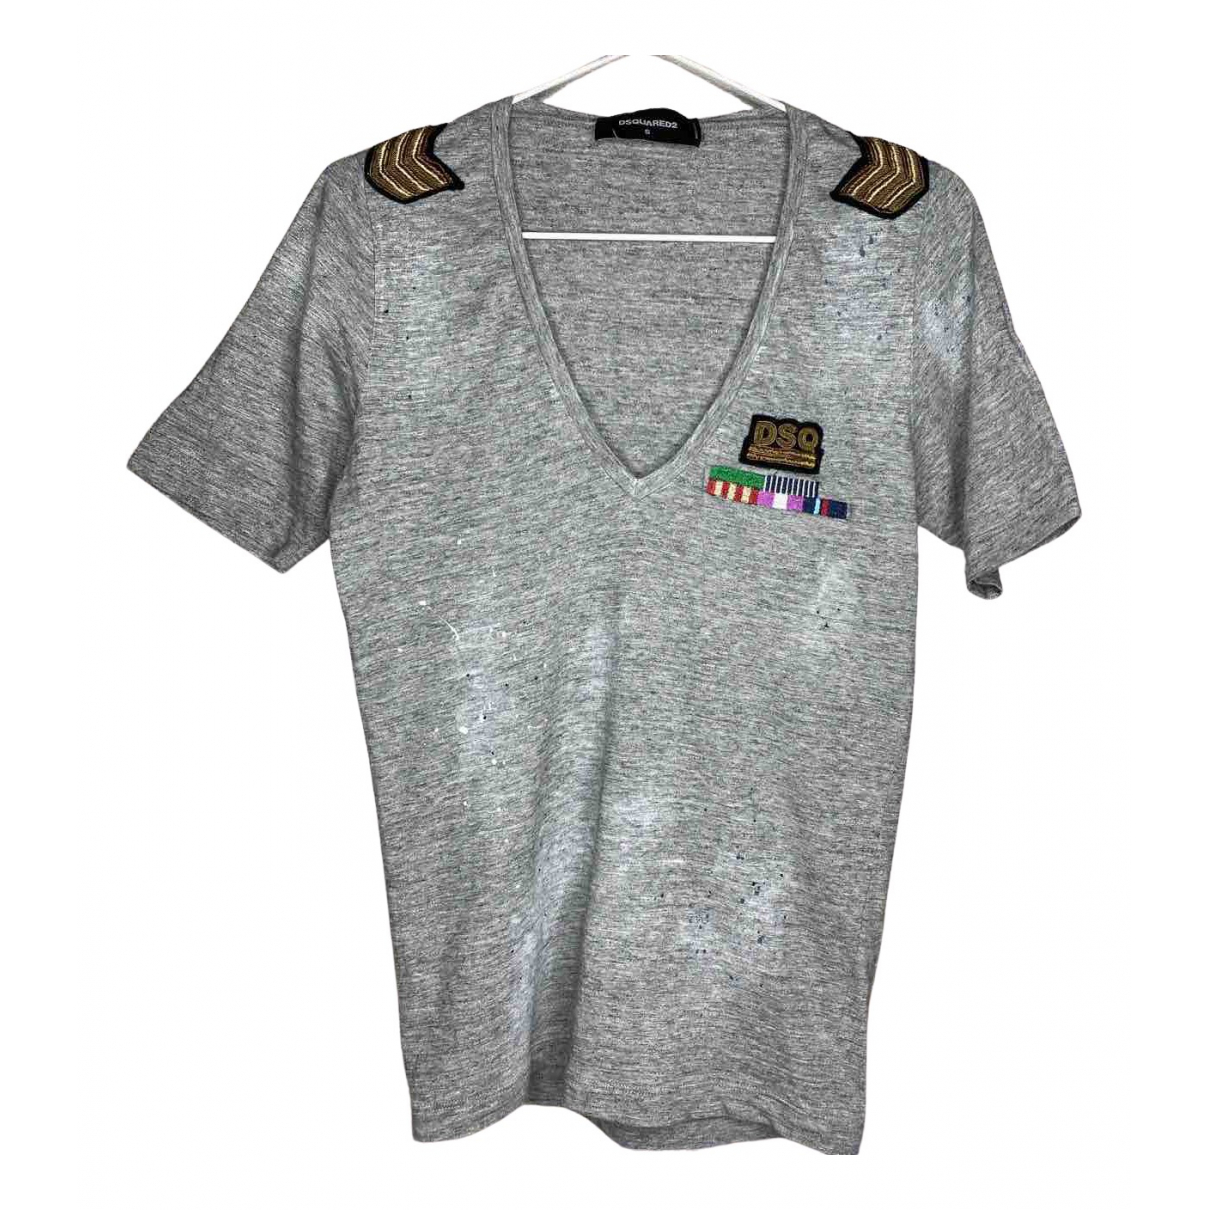 Dsquared2 \N Grey Cotton  top for Women S International